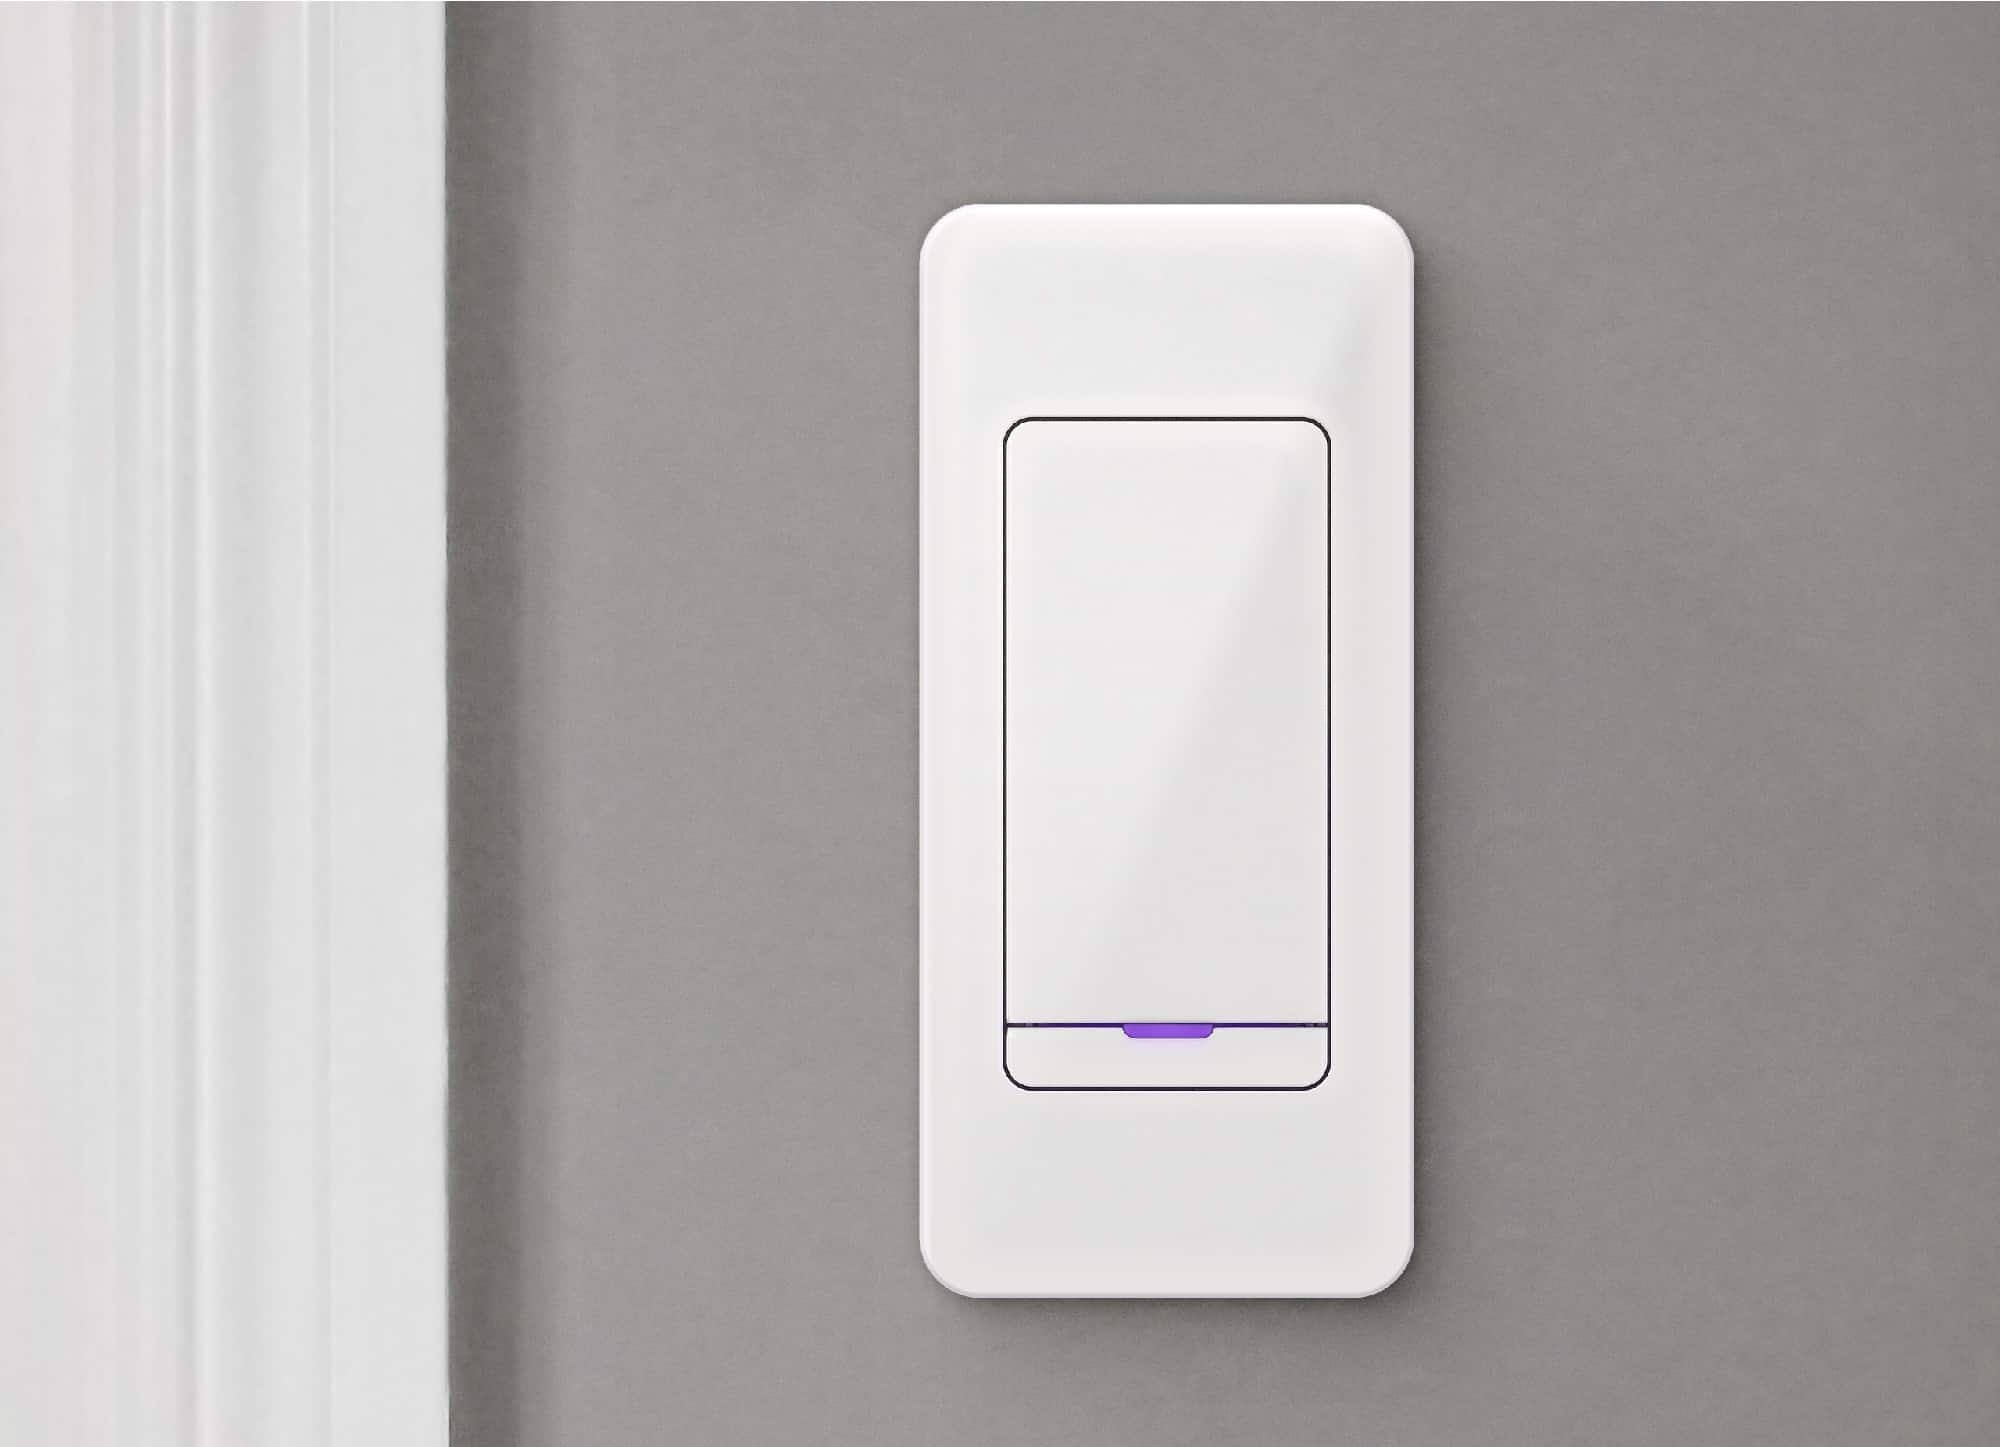 HomeKit light switch makes your smart lights dumb again | Cult of Mac